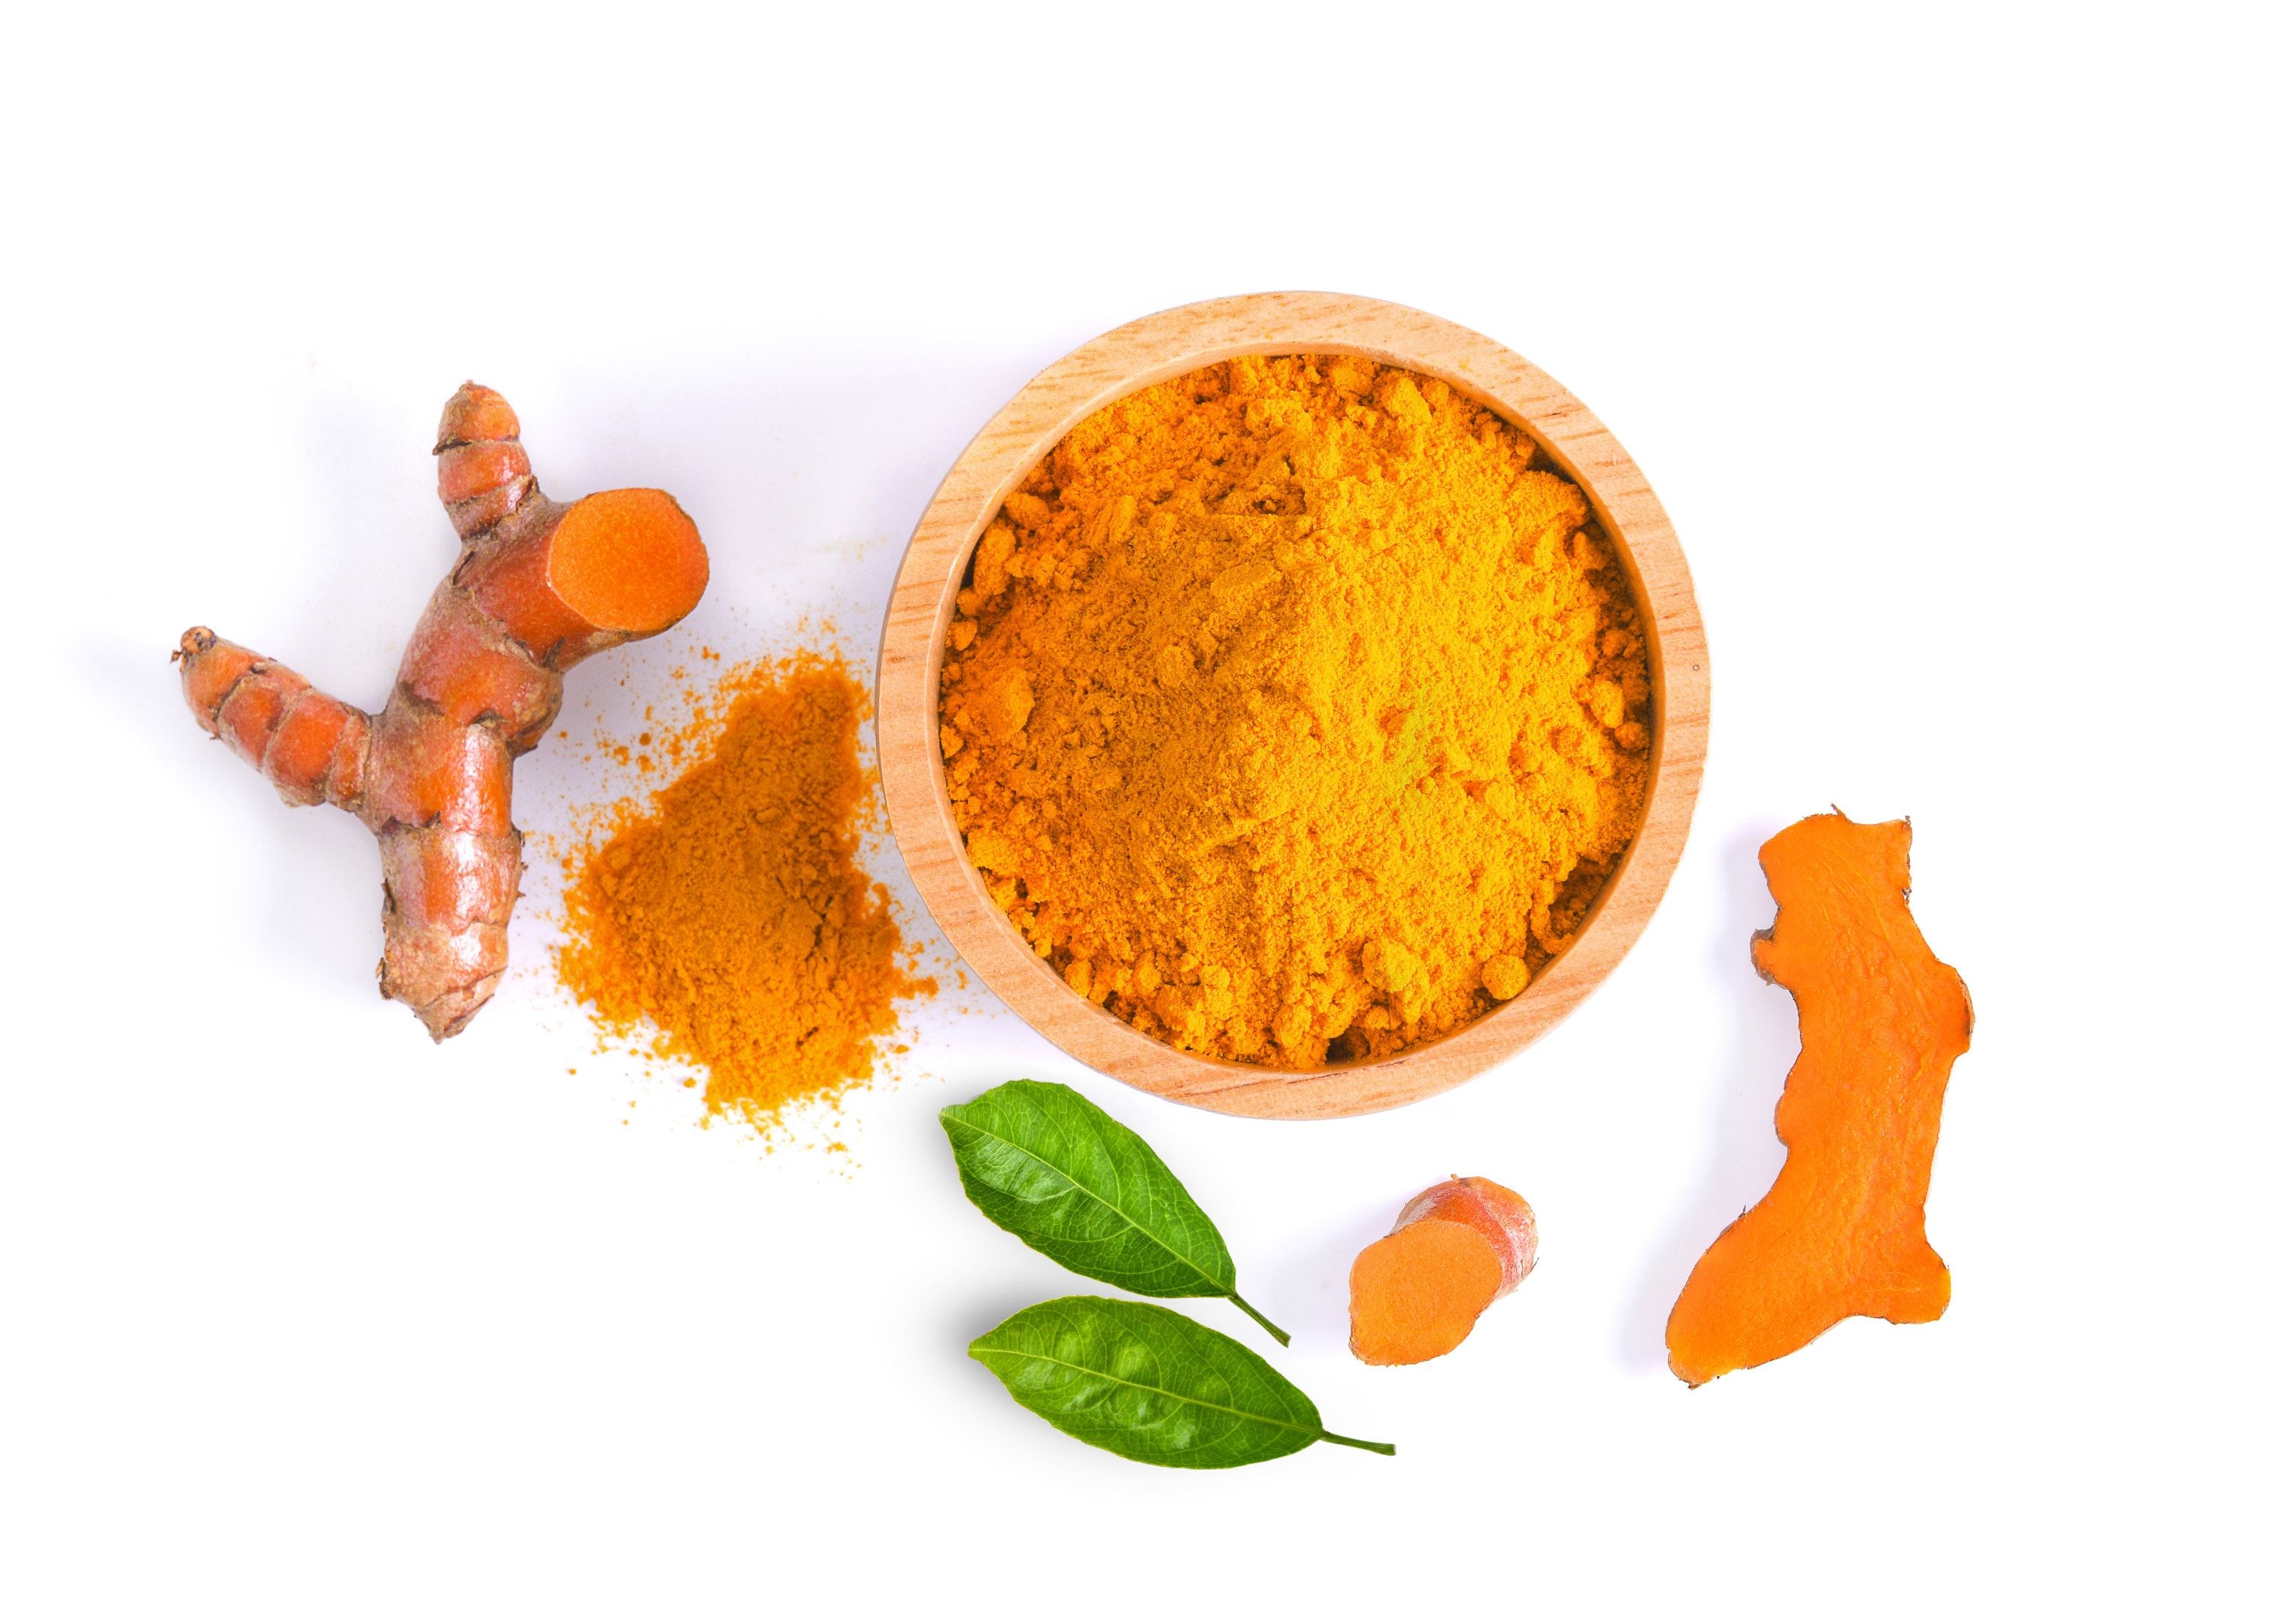 Turmeric root and powder on white background